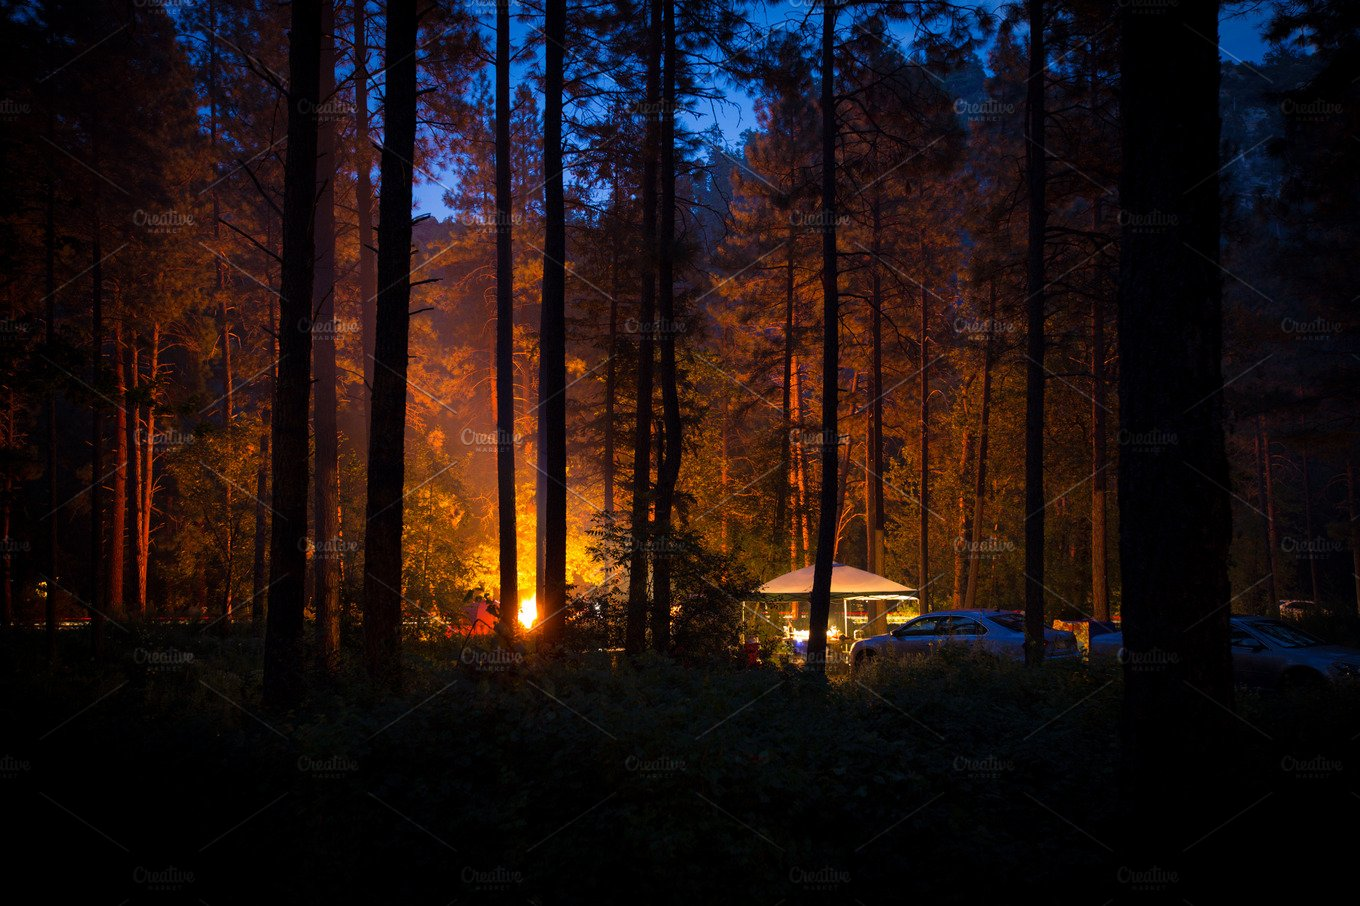 campfire light in the forest night nature photos creative market